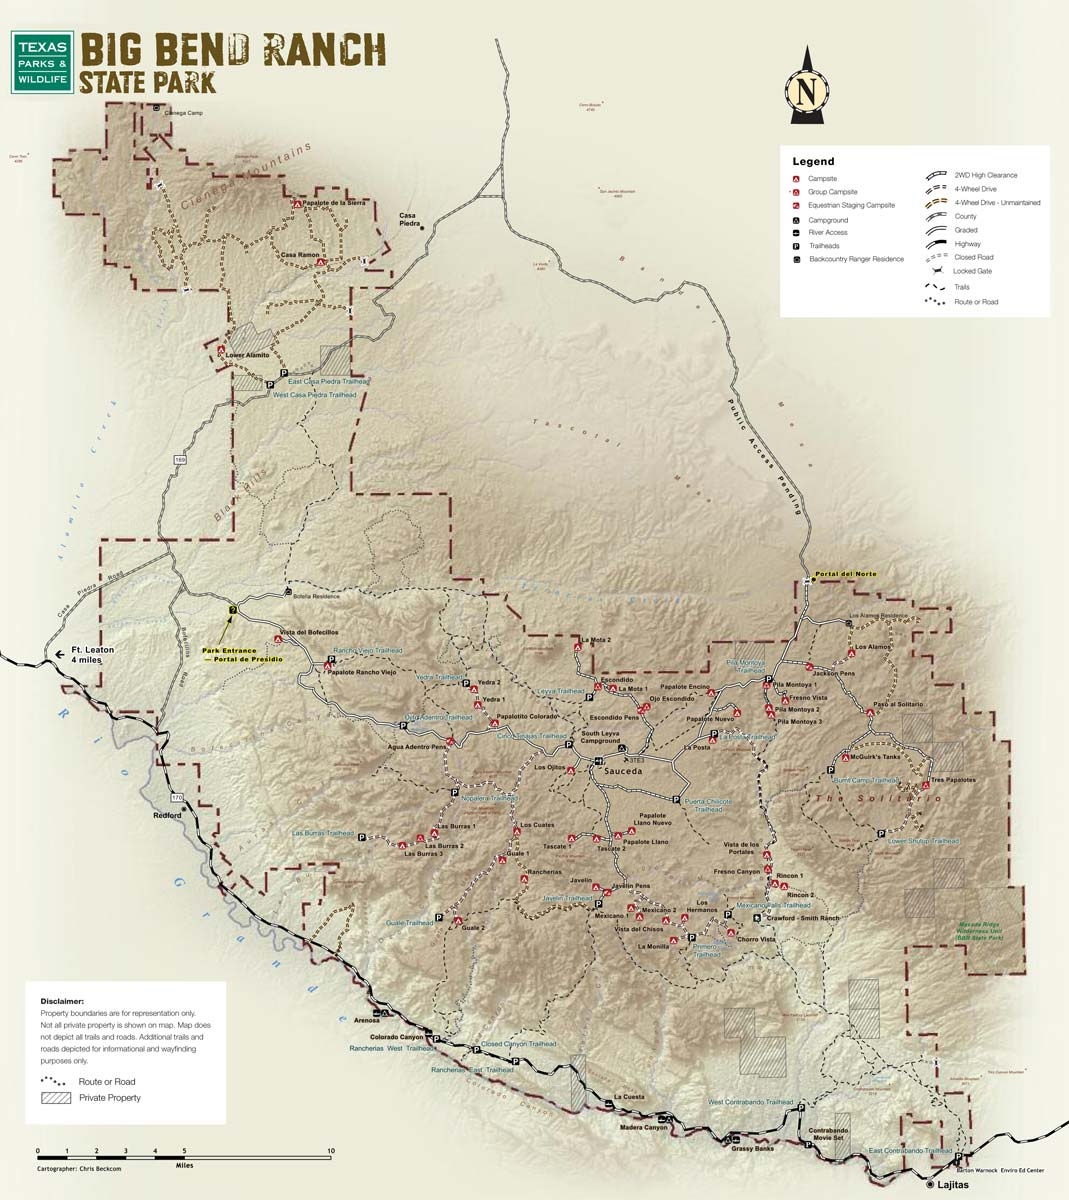 Big Bend Ranch State Park — Texas Parks & Wildlife Department Map Of Colorado State Parks on map of state of colorado, map of colorado colleges and universities, map of colorado points of interest, map of colorado public hunting, map of colorado fish hatcheries, map of rhode island parks, map of colorado water, map of colorado geography, map of colorado national wildlife refuges, map colorado vacation, map of colorado state lands, map of colorado cities, map of colorado county boundaries, map of colorado scenic drives, map of colorado state fair, map of dayton parks, map of colorado royal gorge bridge, map of colorado historical markers, map of memphis parks, map of colorado hotels,